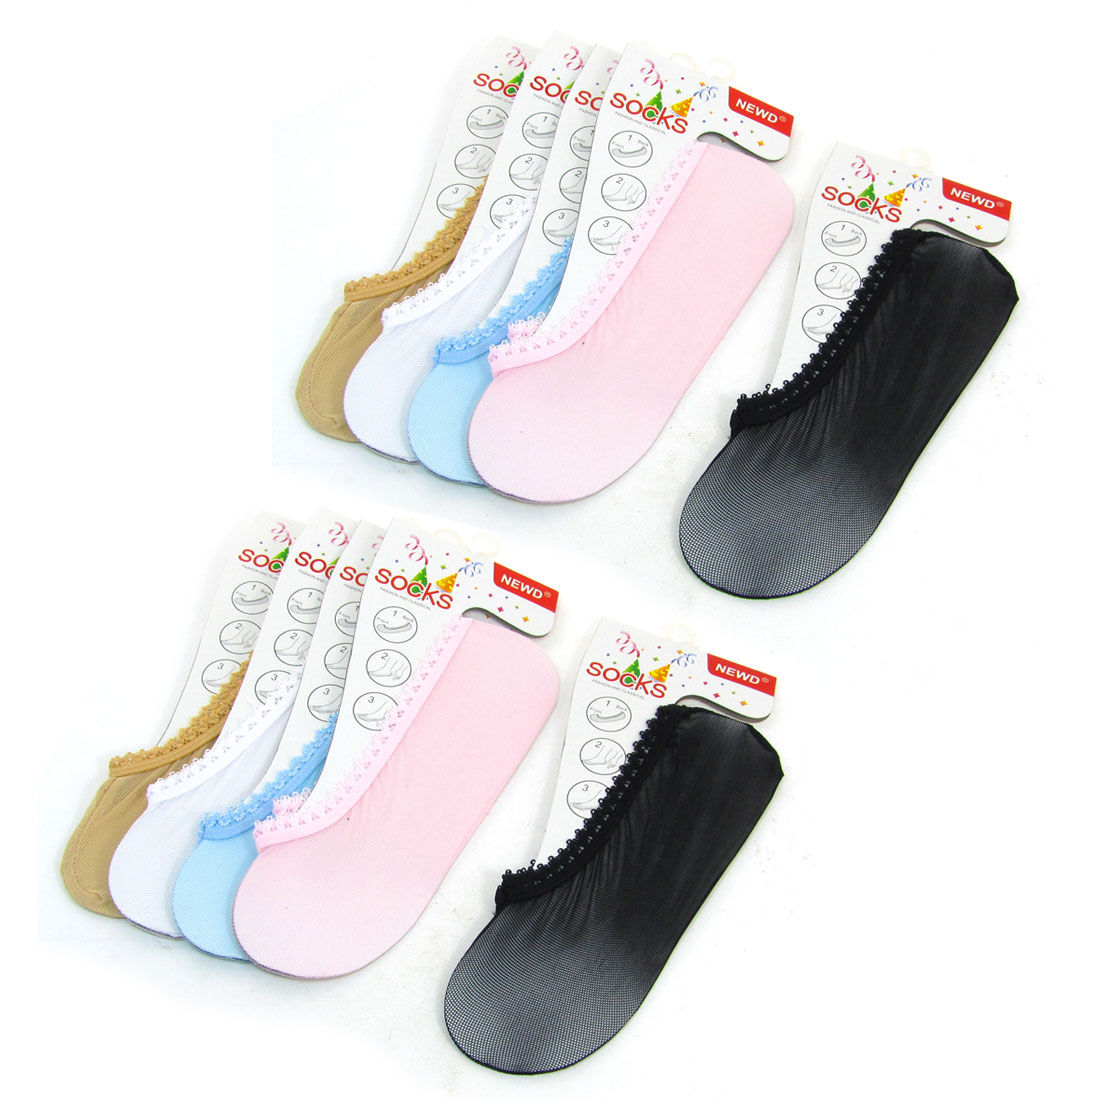 Women Pure Colorful Stretchy Low Cut Footsie Boat Socks 5 Pairs